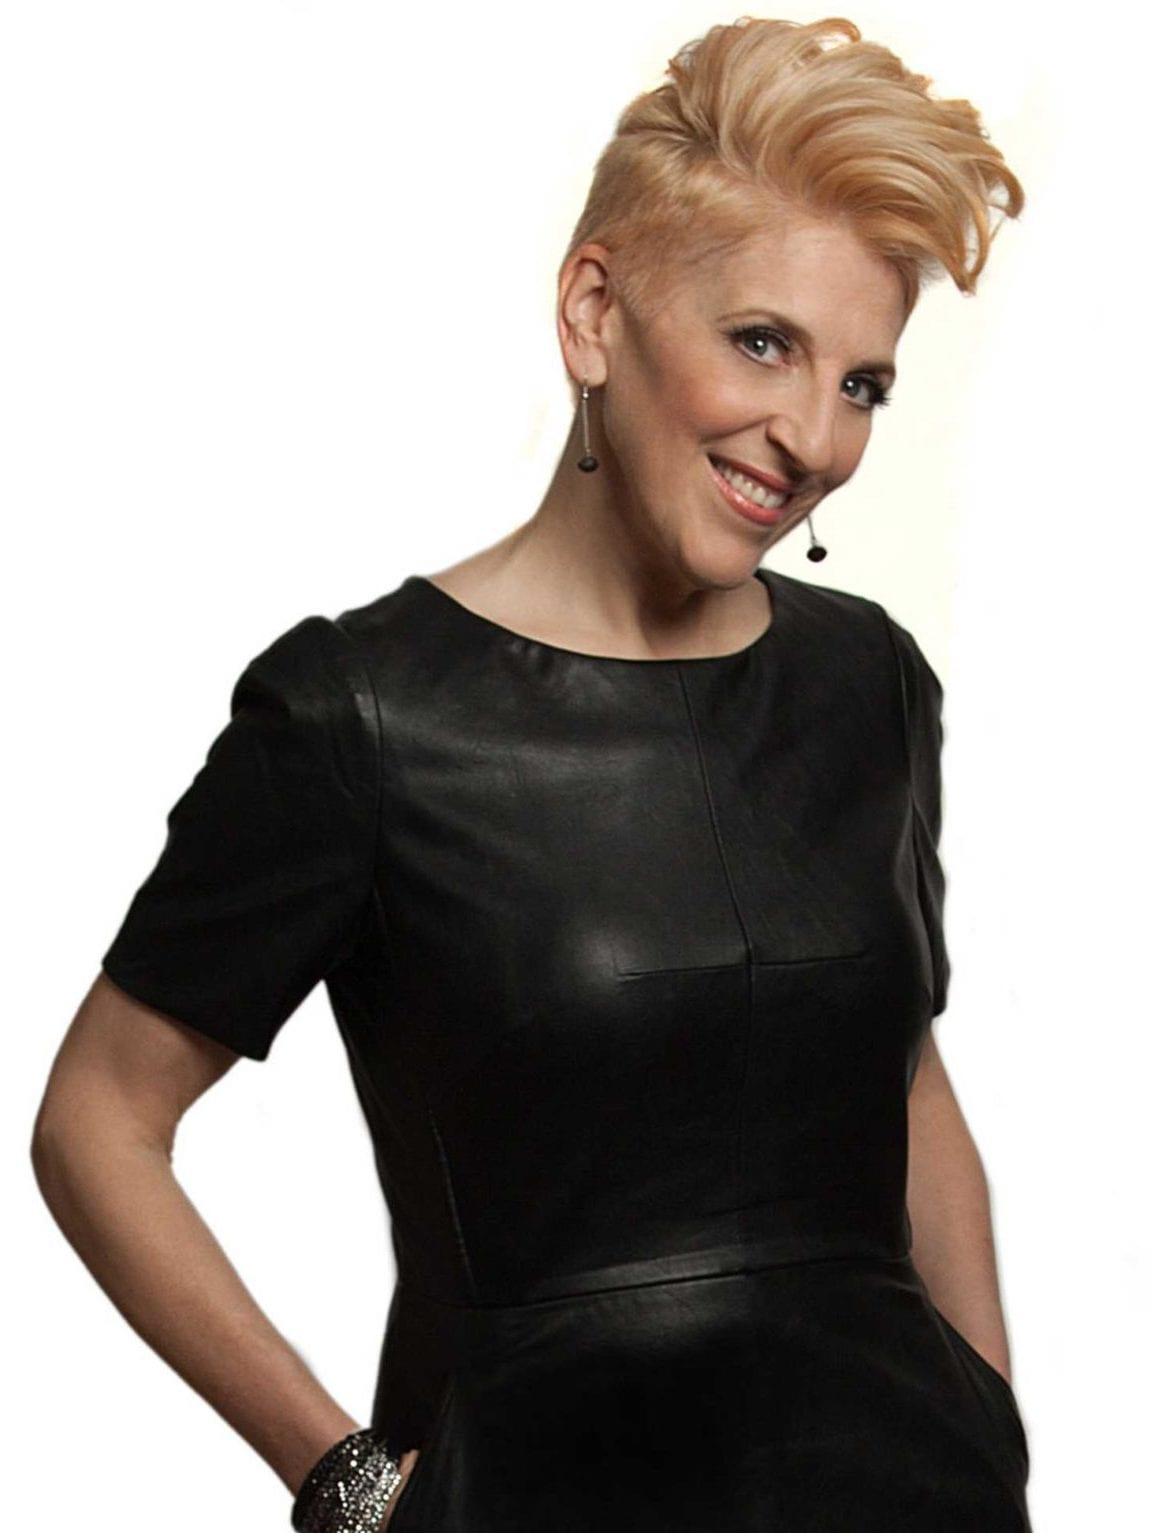 Lisa Lampanelli in a black dress.